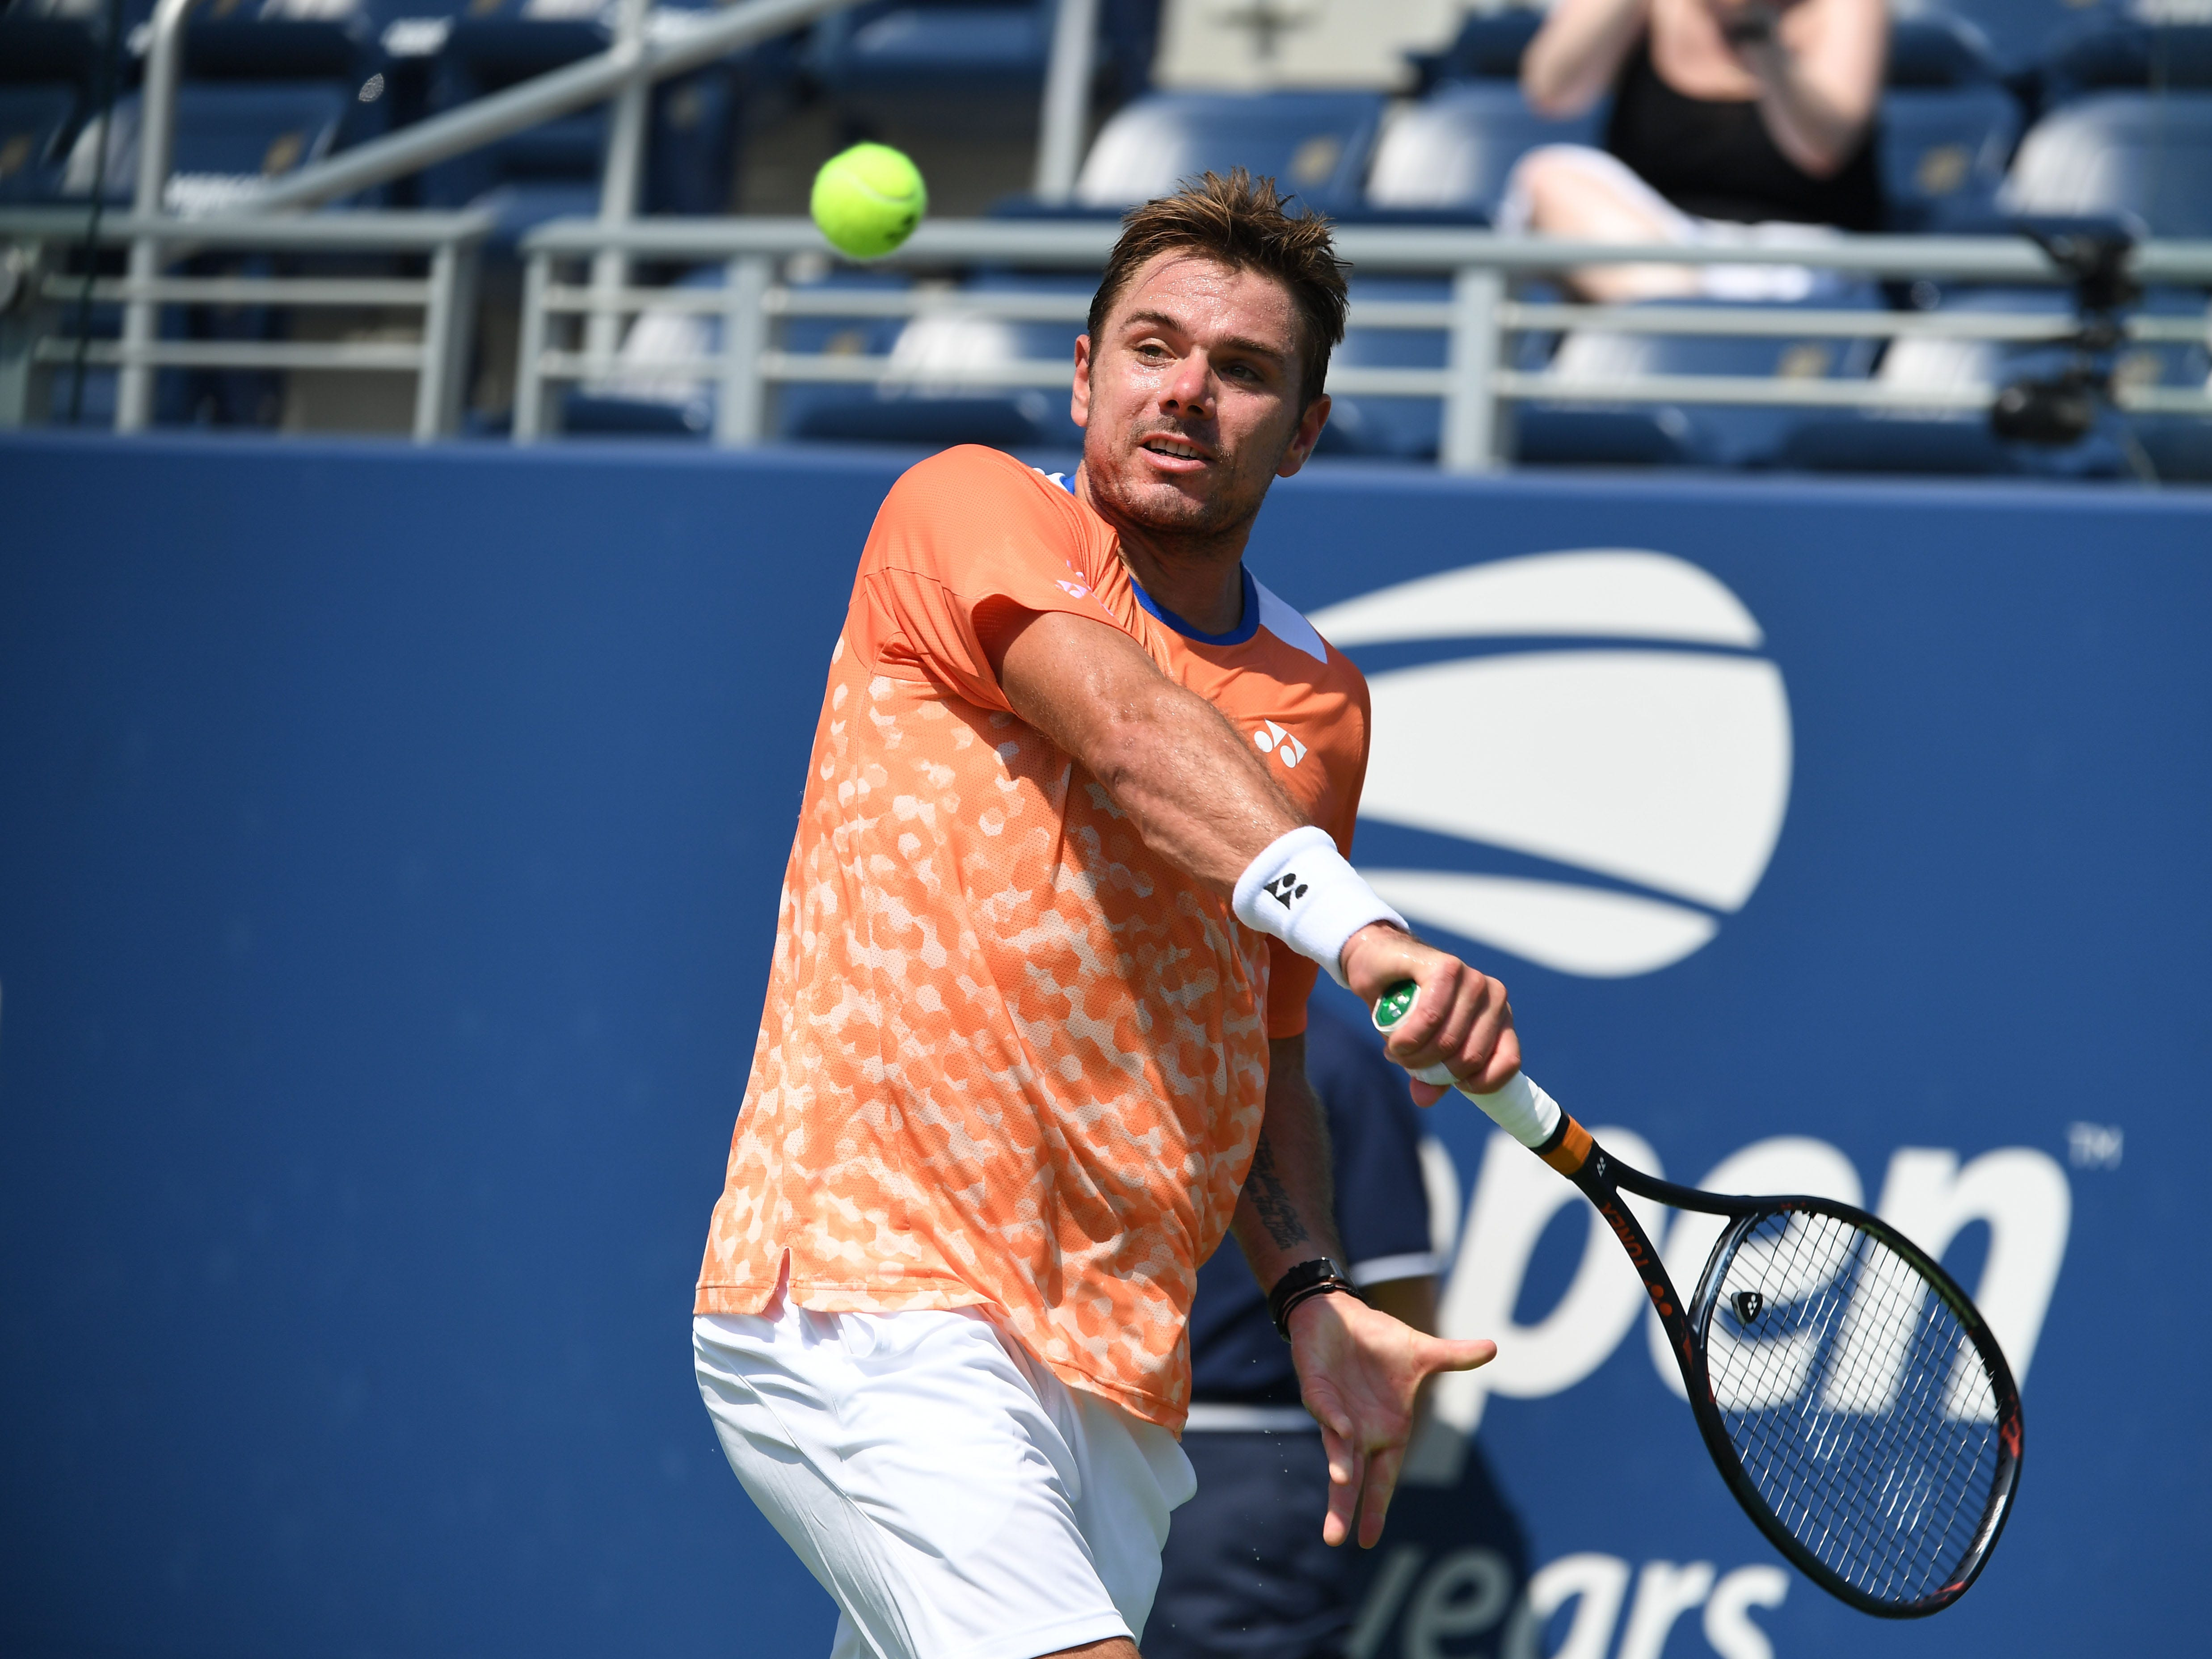 Stan Wawrinka of Switzerland hits to Ugo Humbert of France in a second-round match at the U.S. Open.